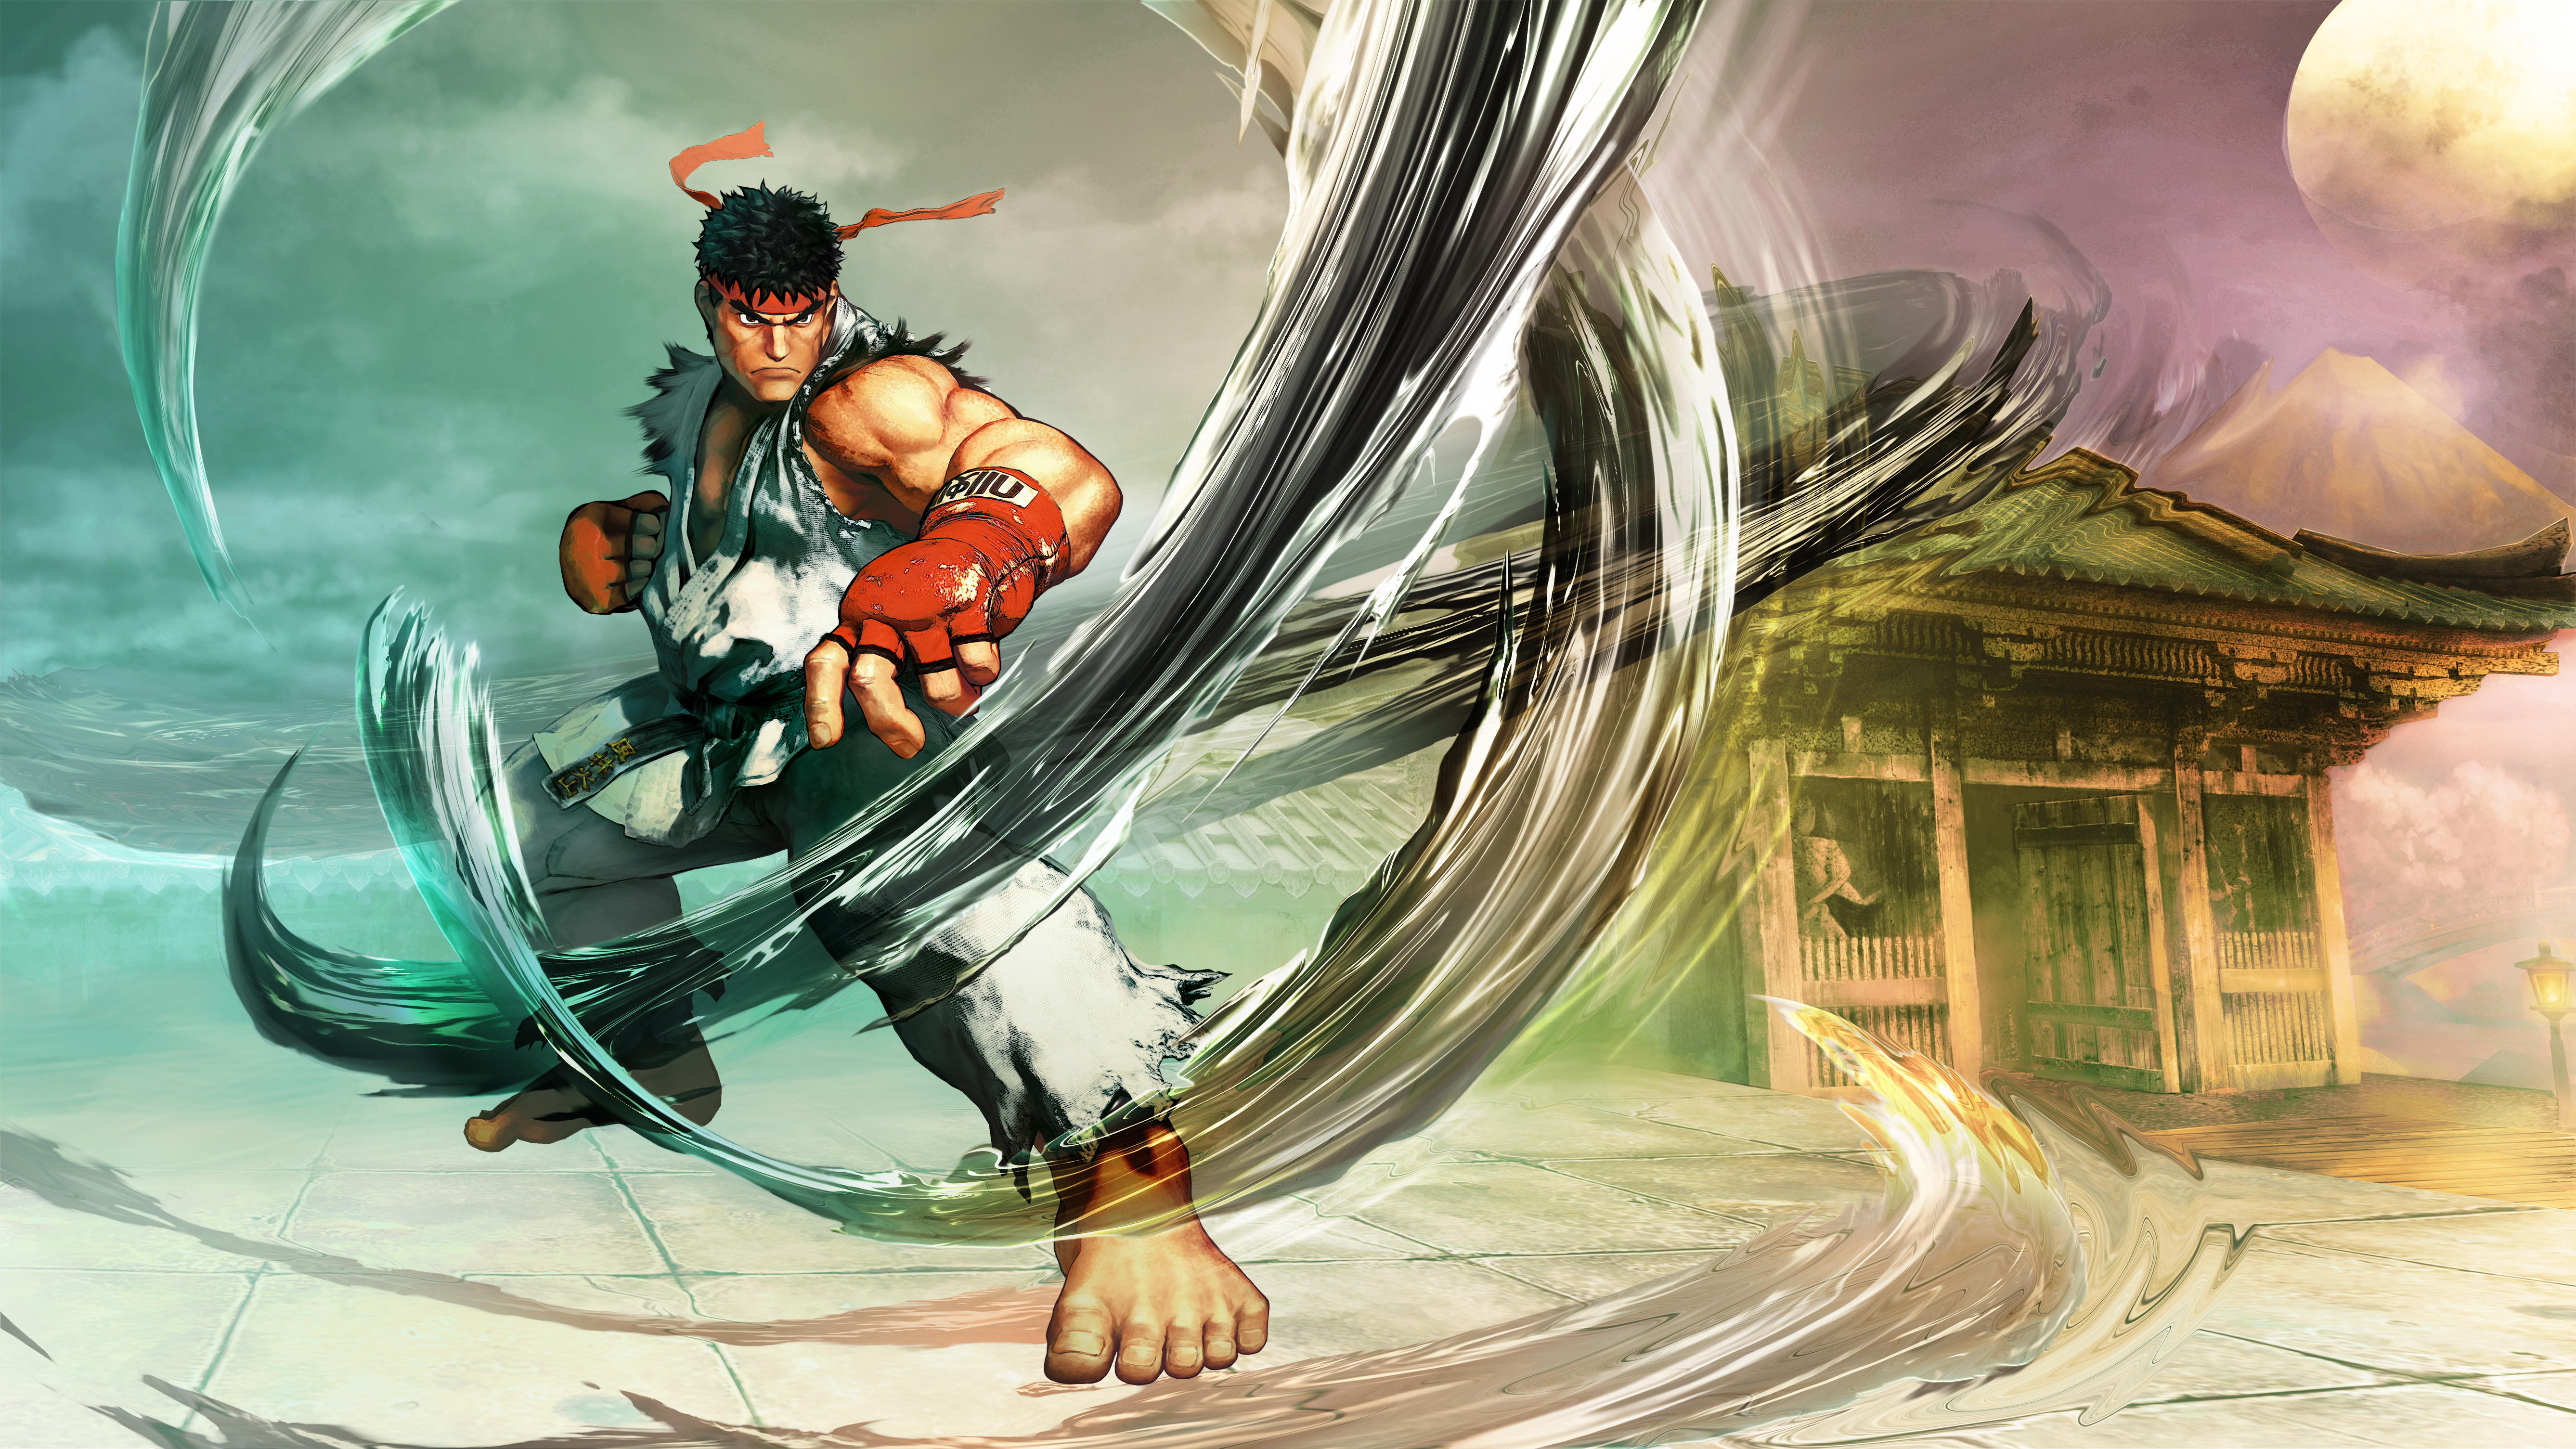 93 street fighter v hd wallpapers | background images - wallpaper abyss